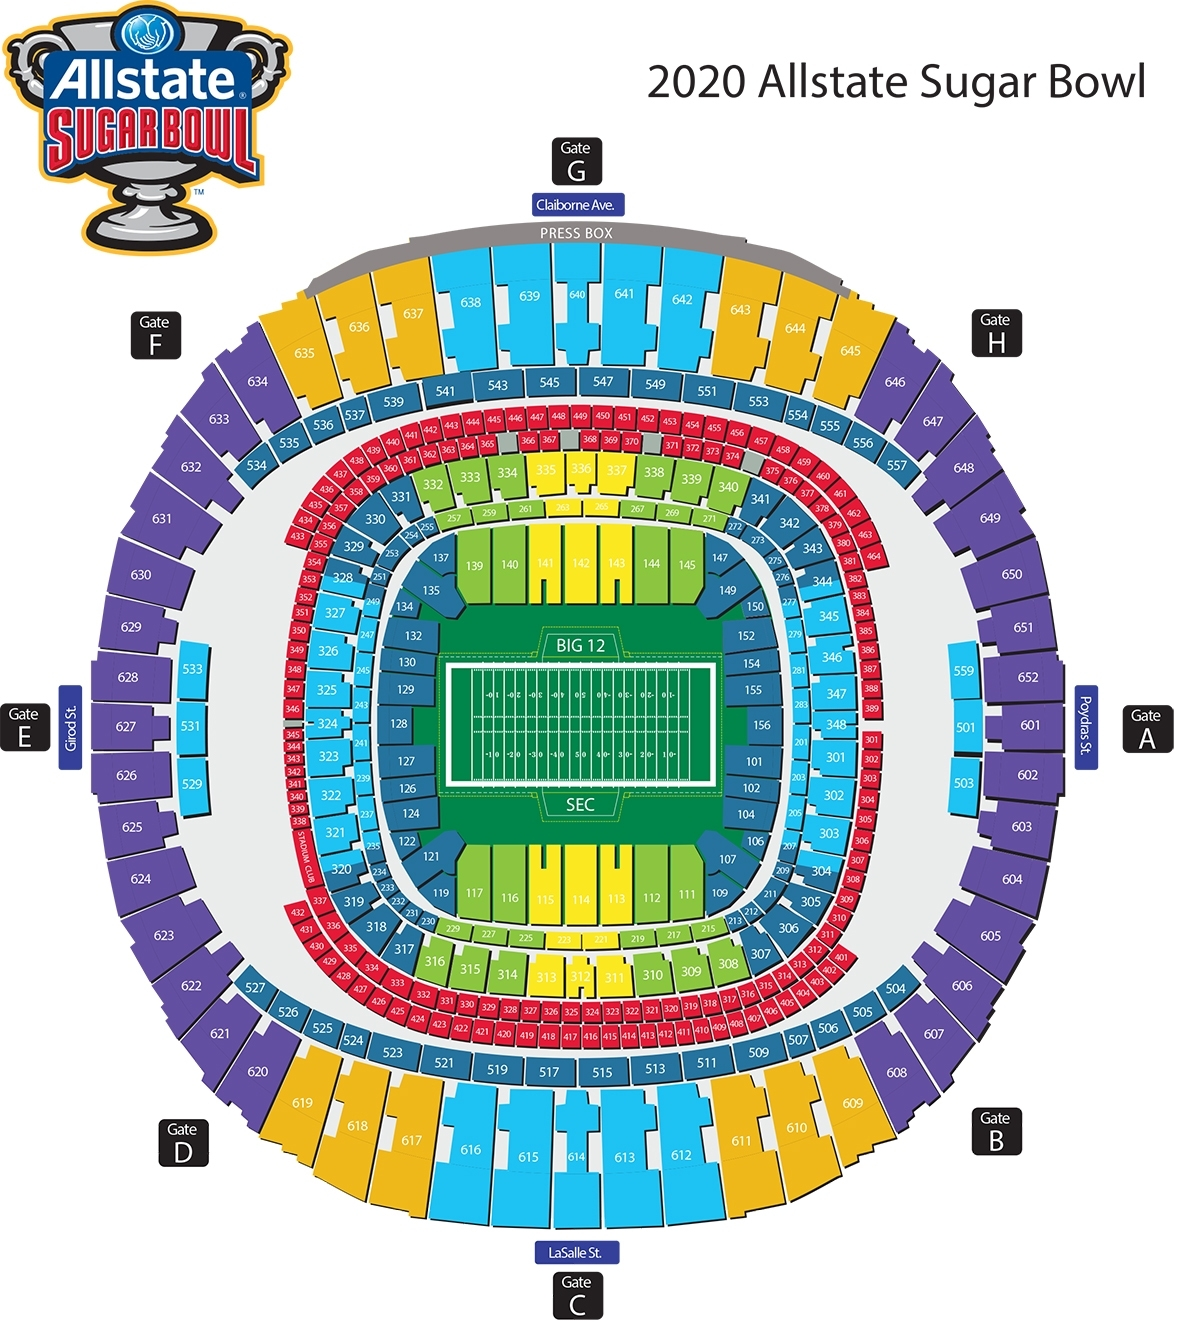 Seating Diagram - Official Site Of The Allstate Sugar Bowl within Super Bowl 2019 Seating Chart